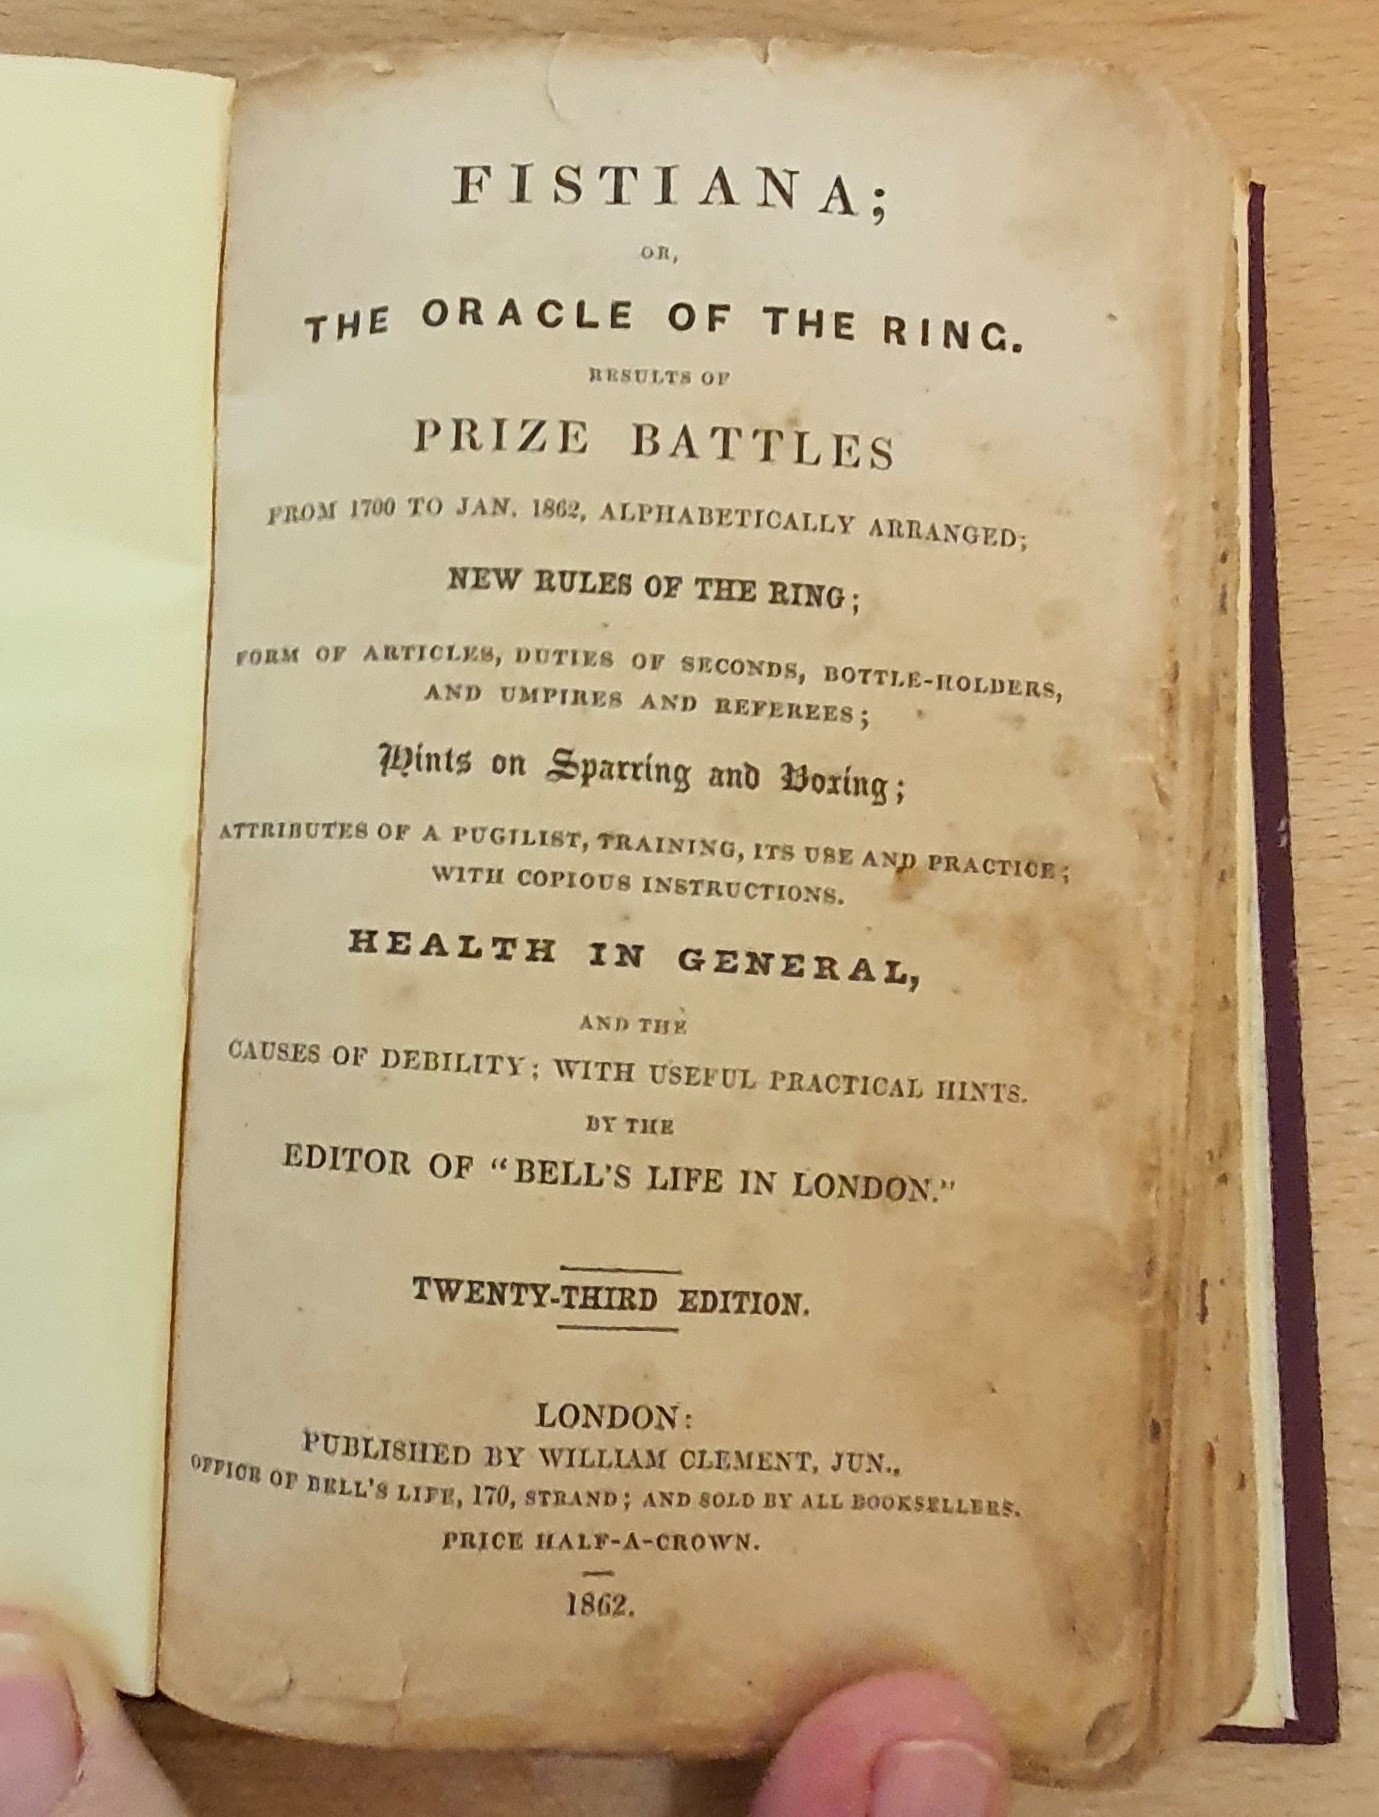 Image for Fistiana; Or, The Oracle Of The Ring. Results Of Prize Battles, from 1700 to Jan 1862, alphabetically arranged. New rules of the ring; Form of articles, duties of seconds, bottle-holders, and umpires and referees...